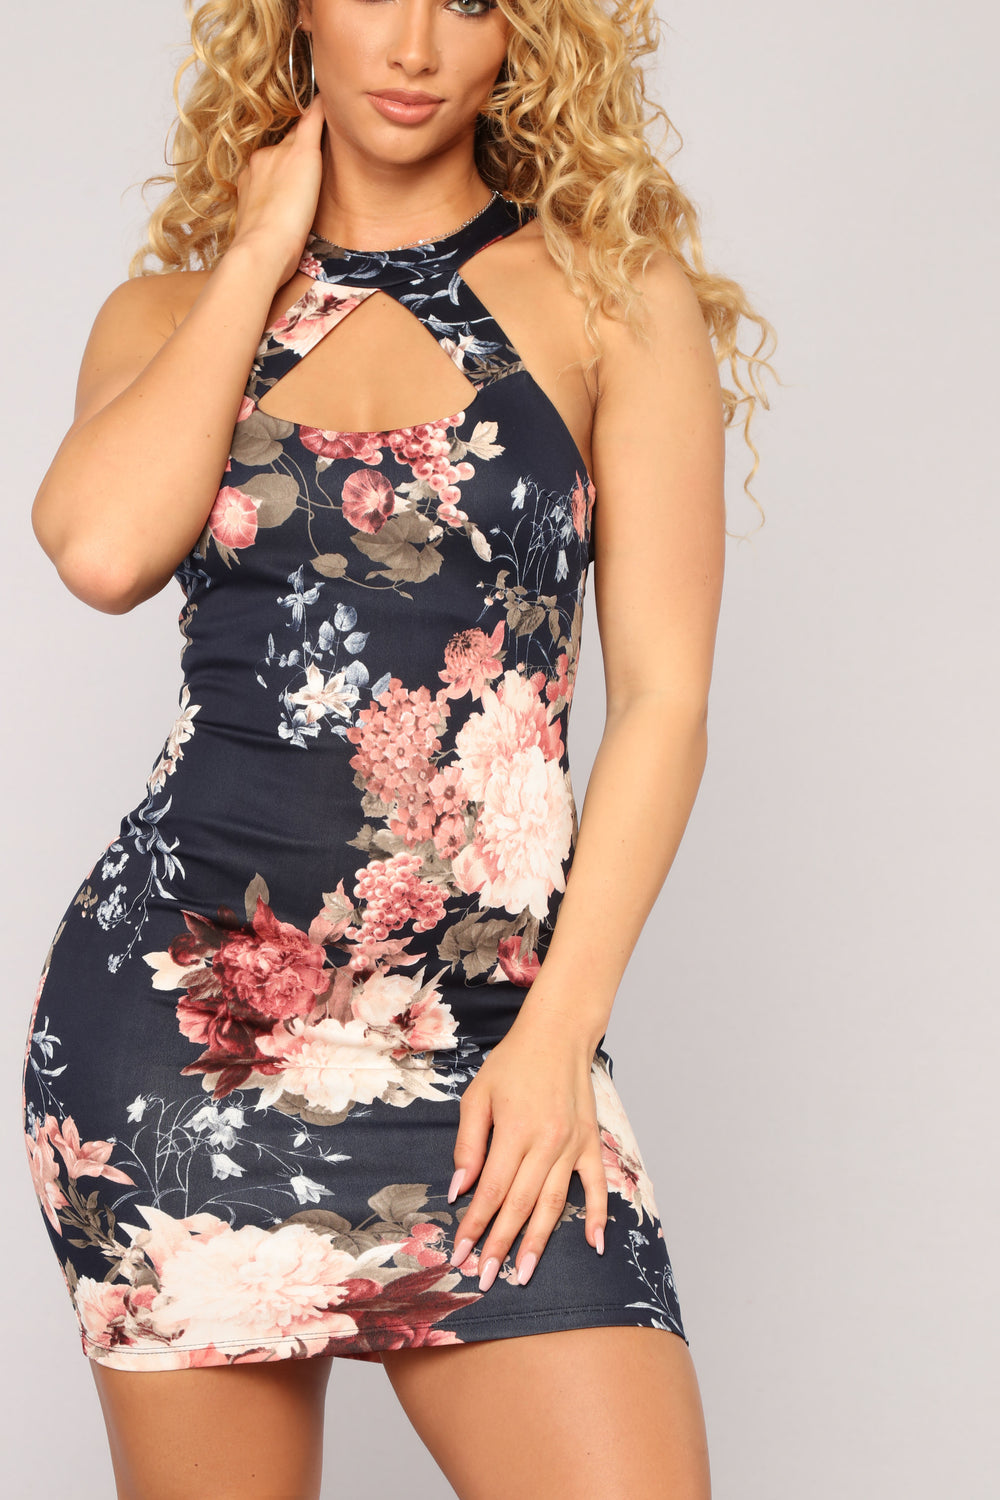 For A Moment Floral Dress - Navy